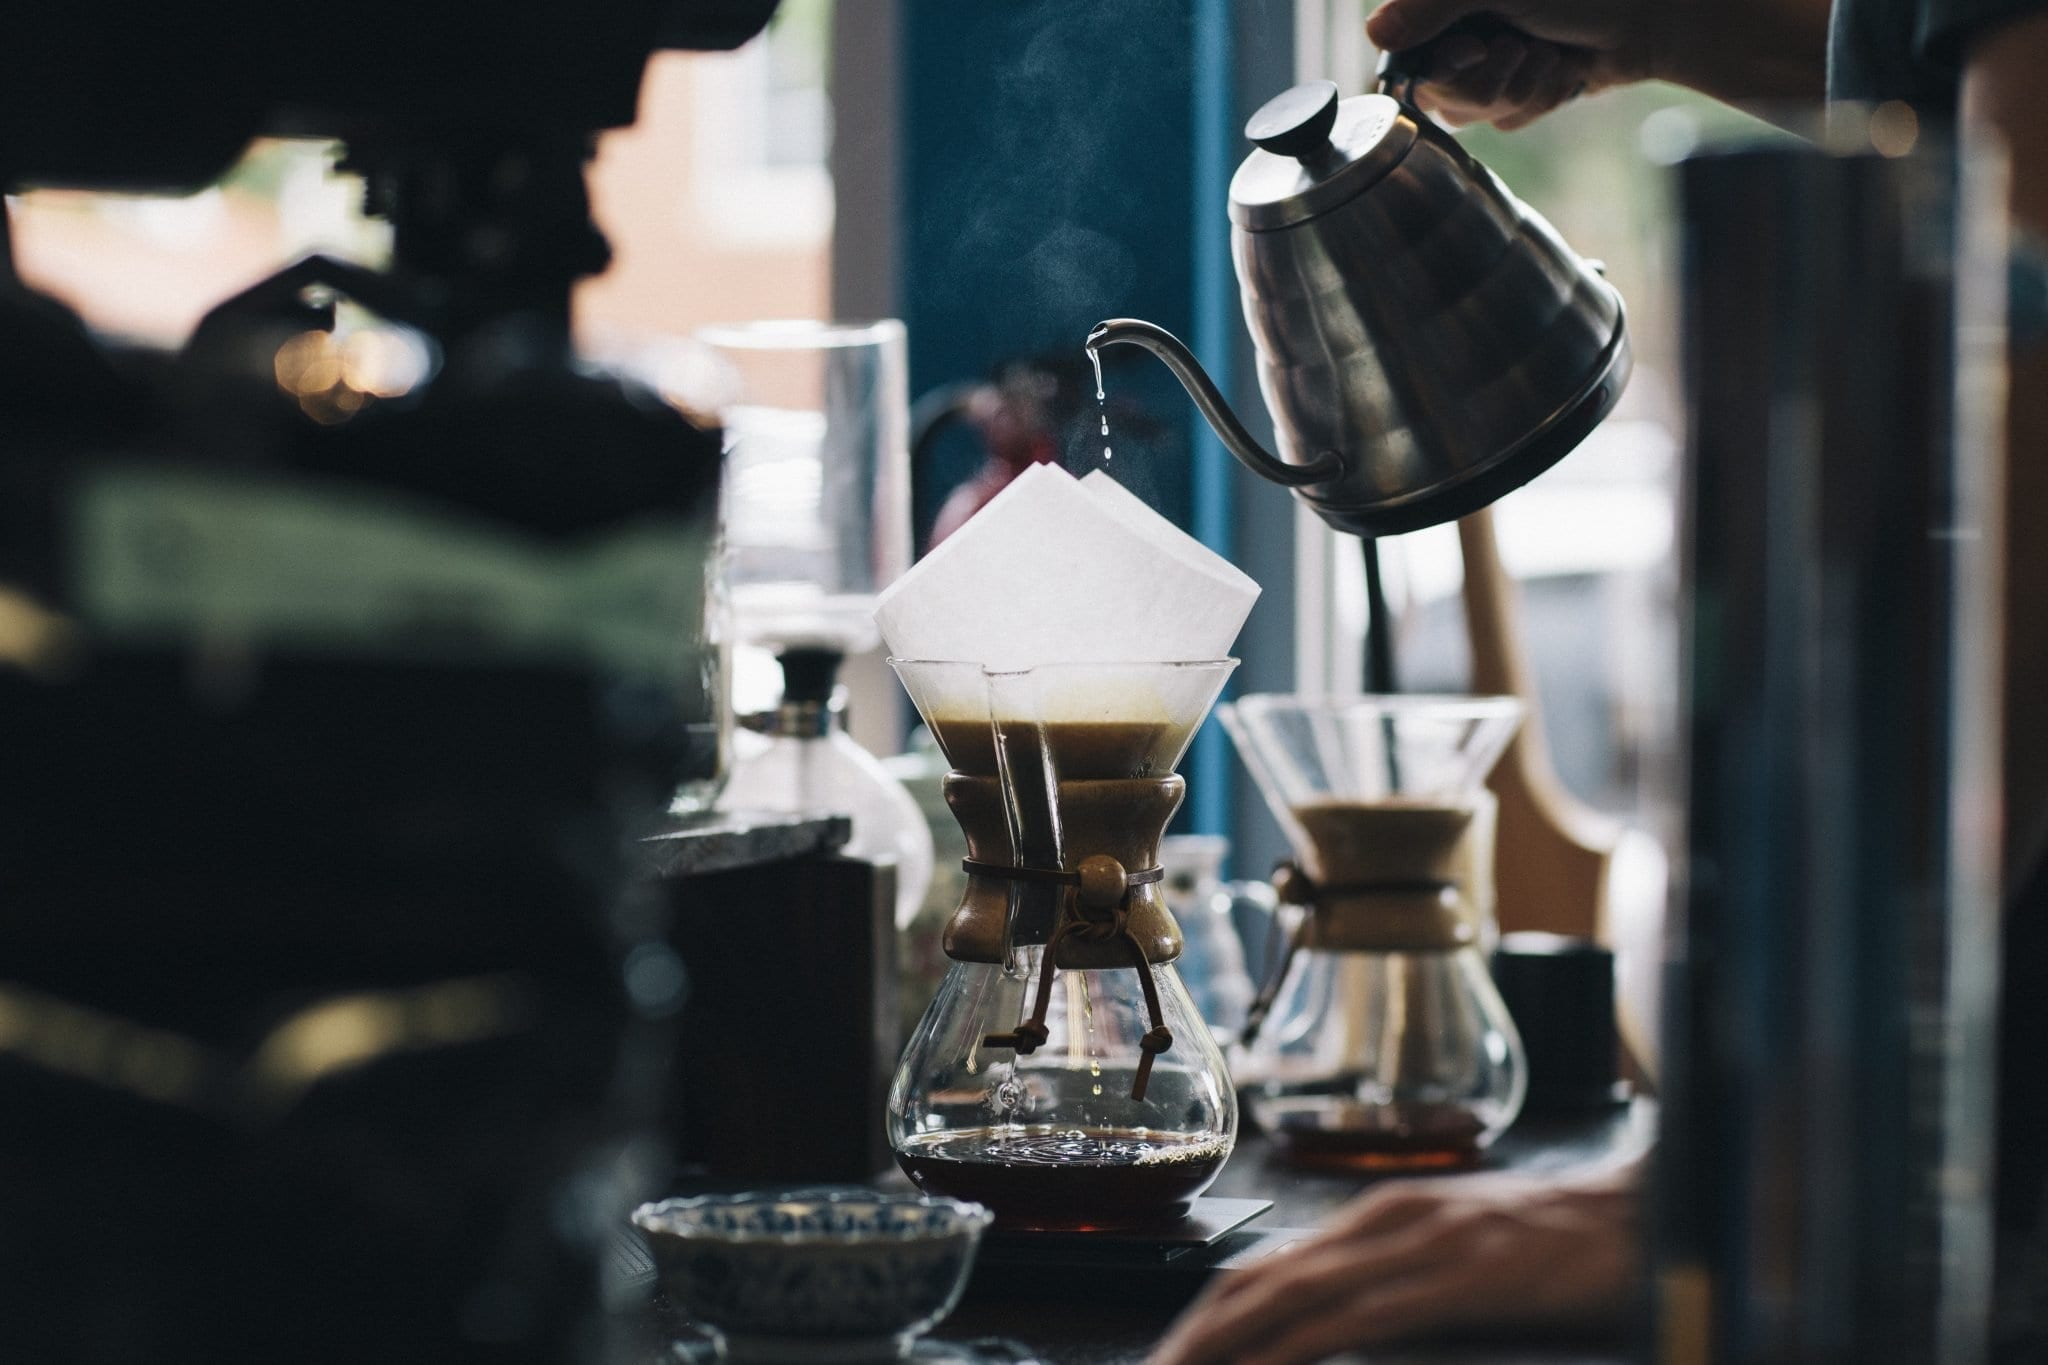 Brewing With The Chemex